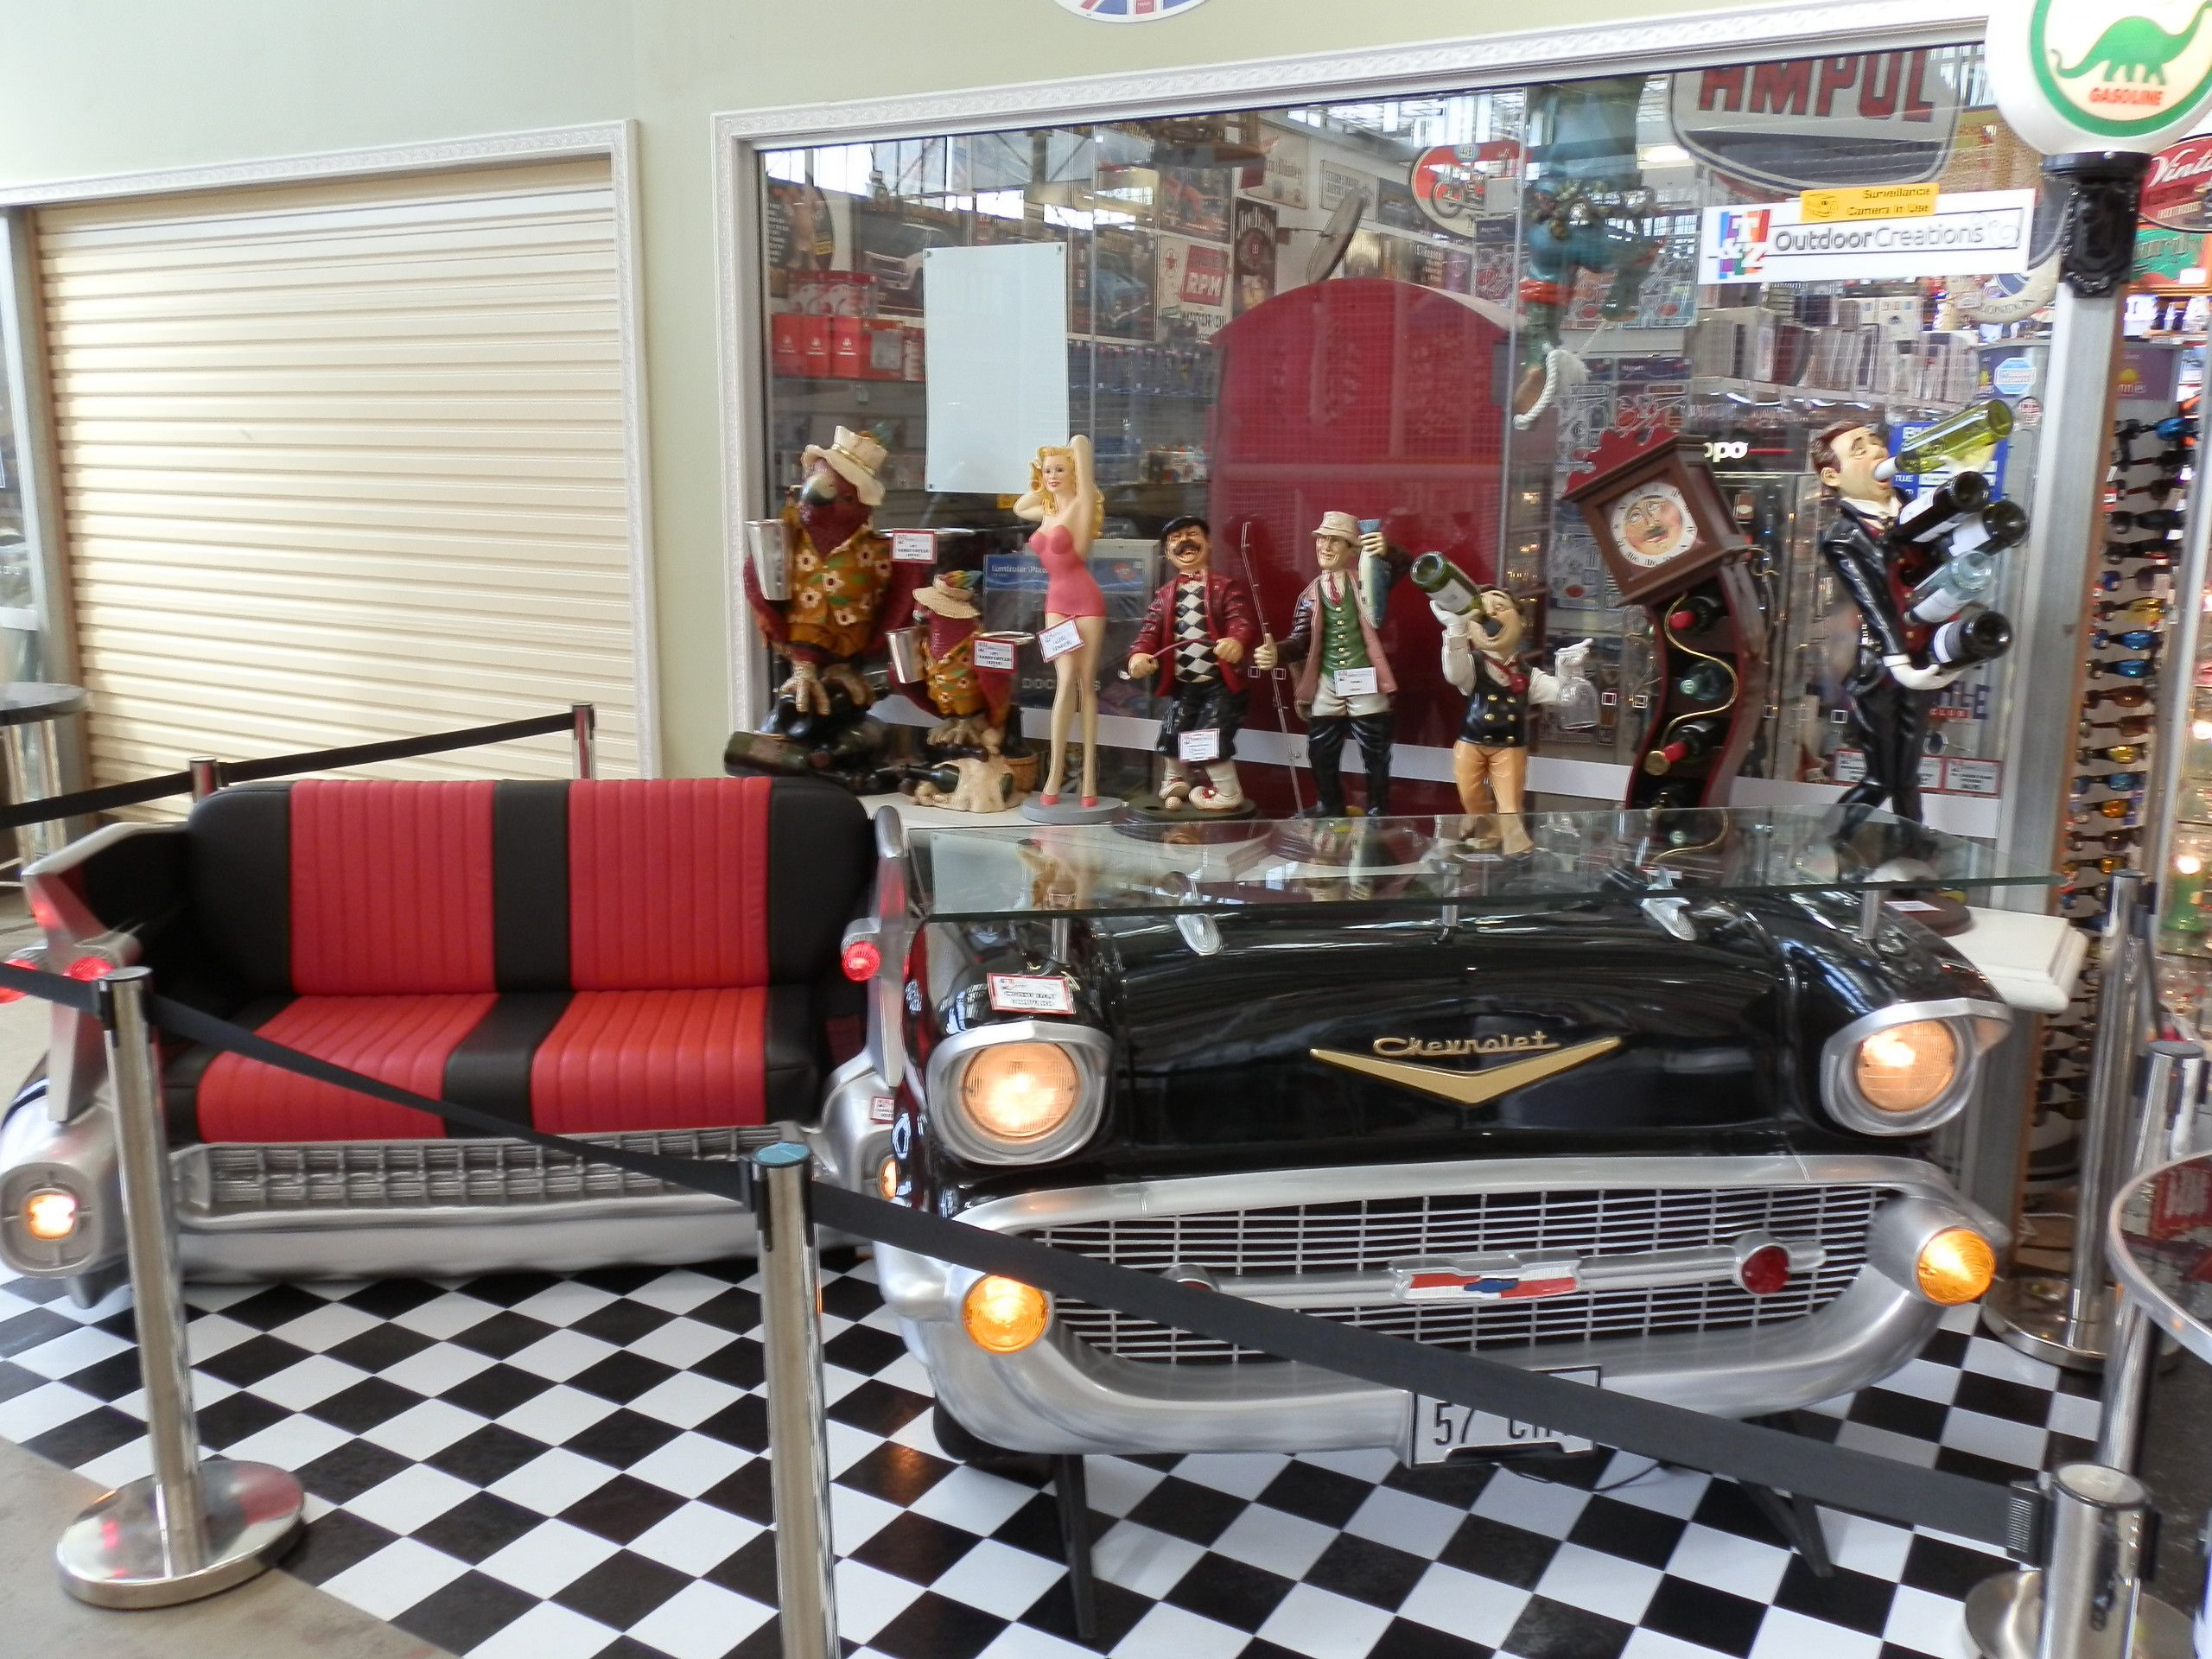 Man Cave Stores Perth : Bar and man cave shop perth western australia t z shed